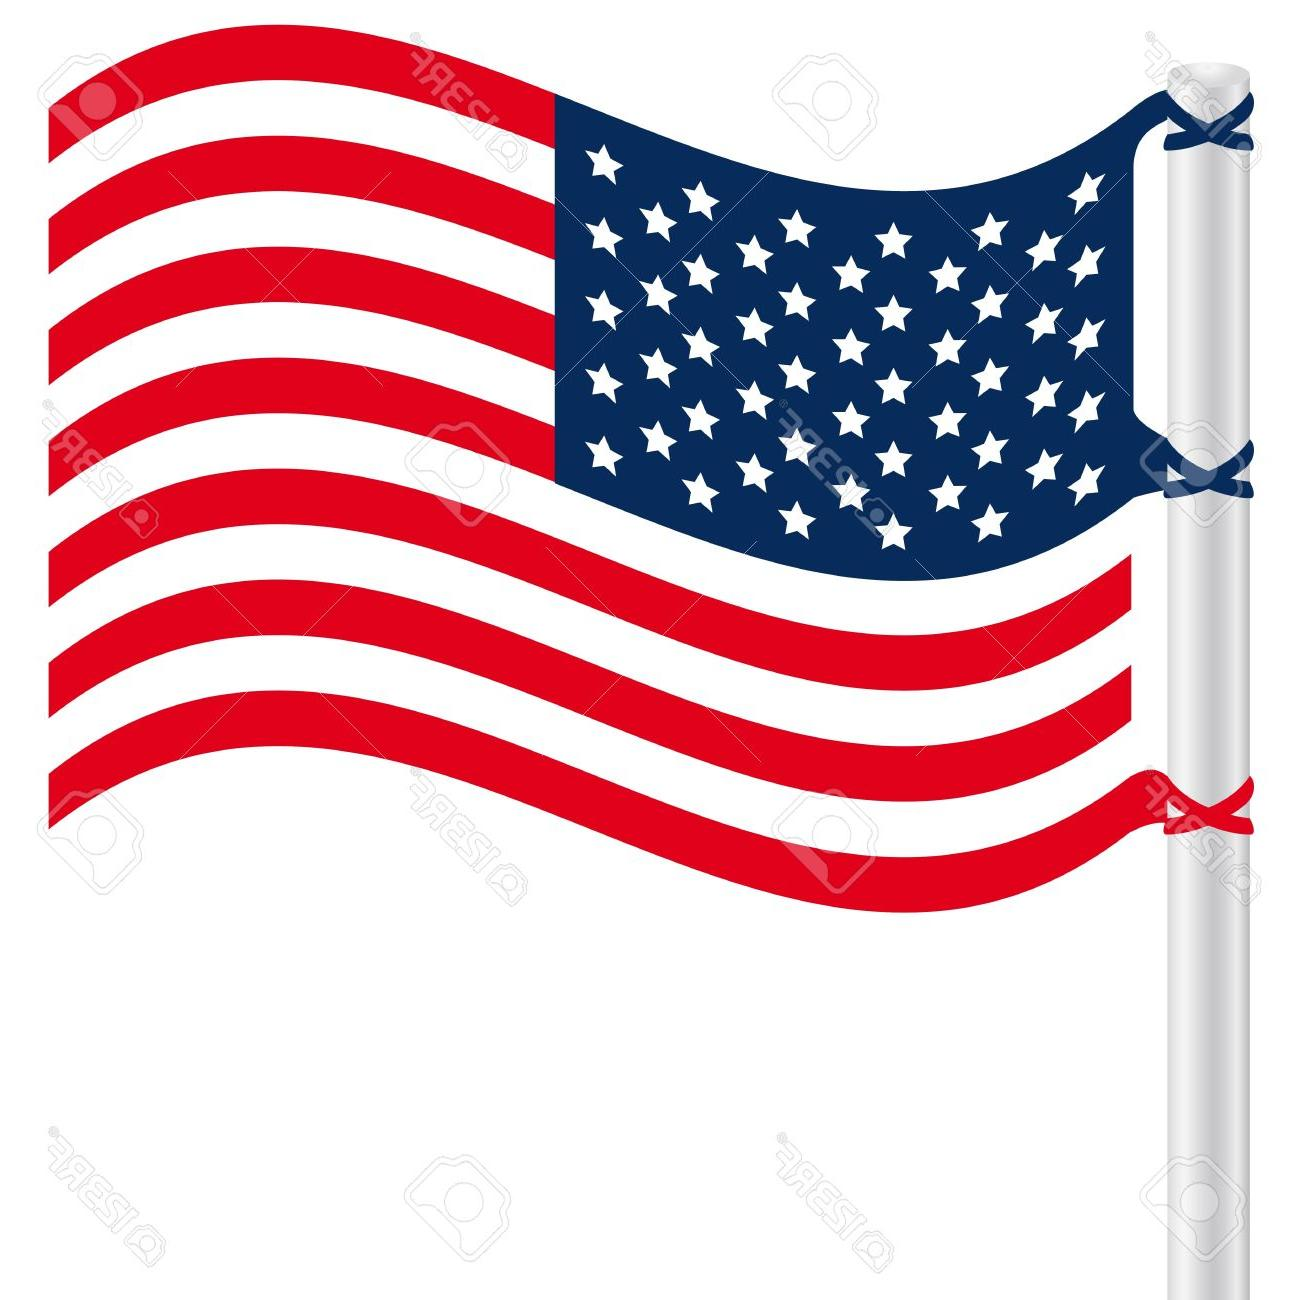 1300x1300 Best Free Waving American Flag Clip Art Design